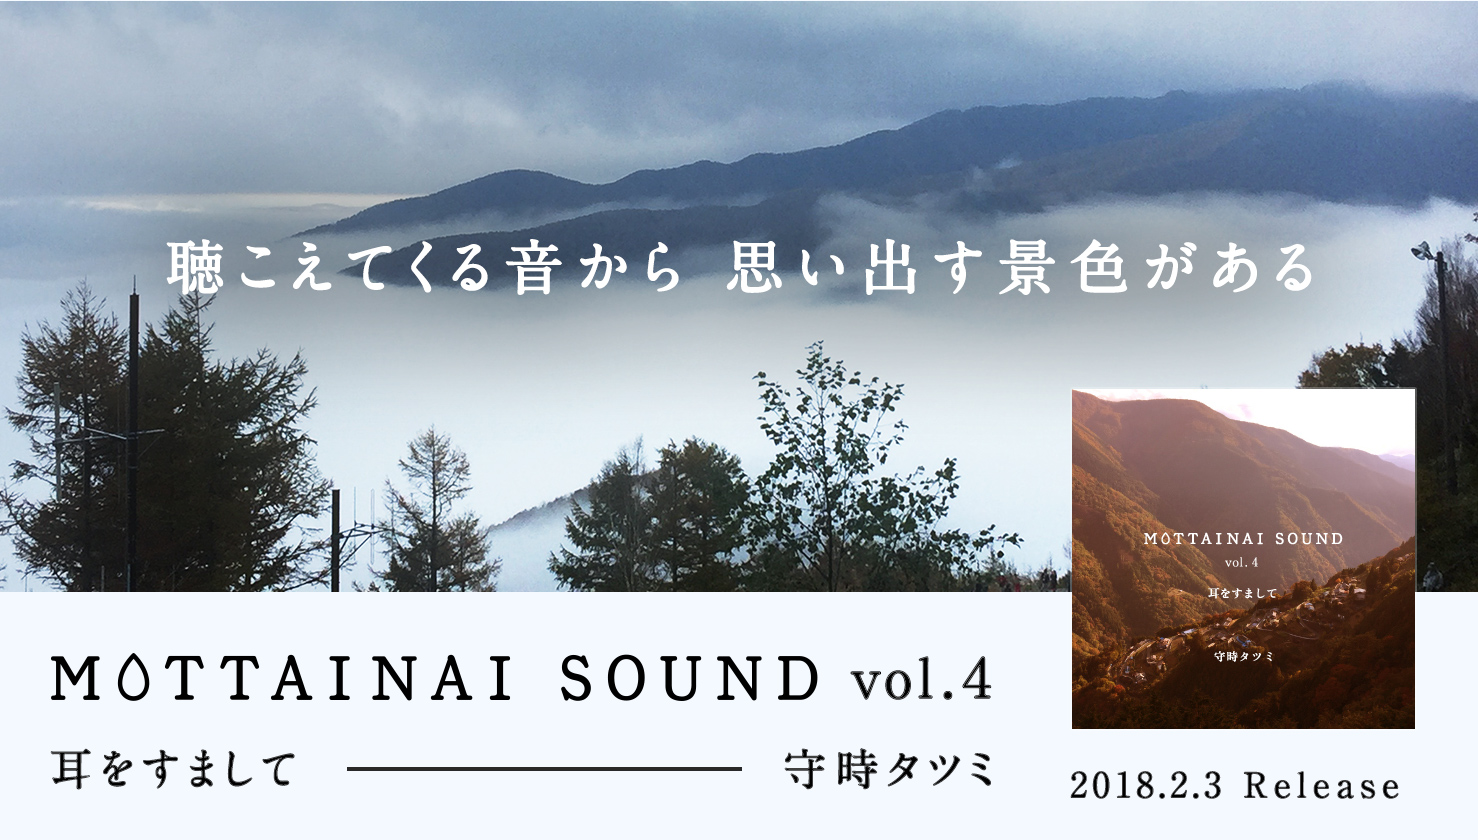 MOTTAINAI SOUND vol.4